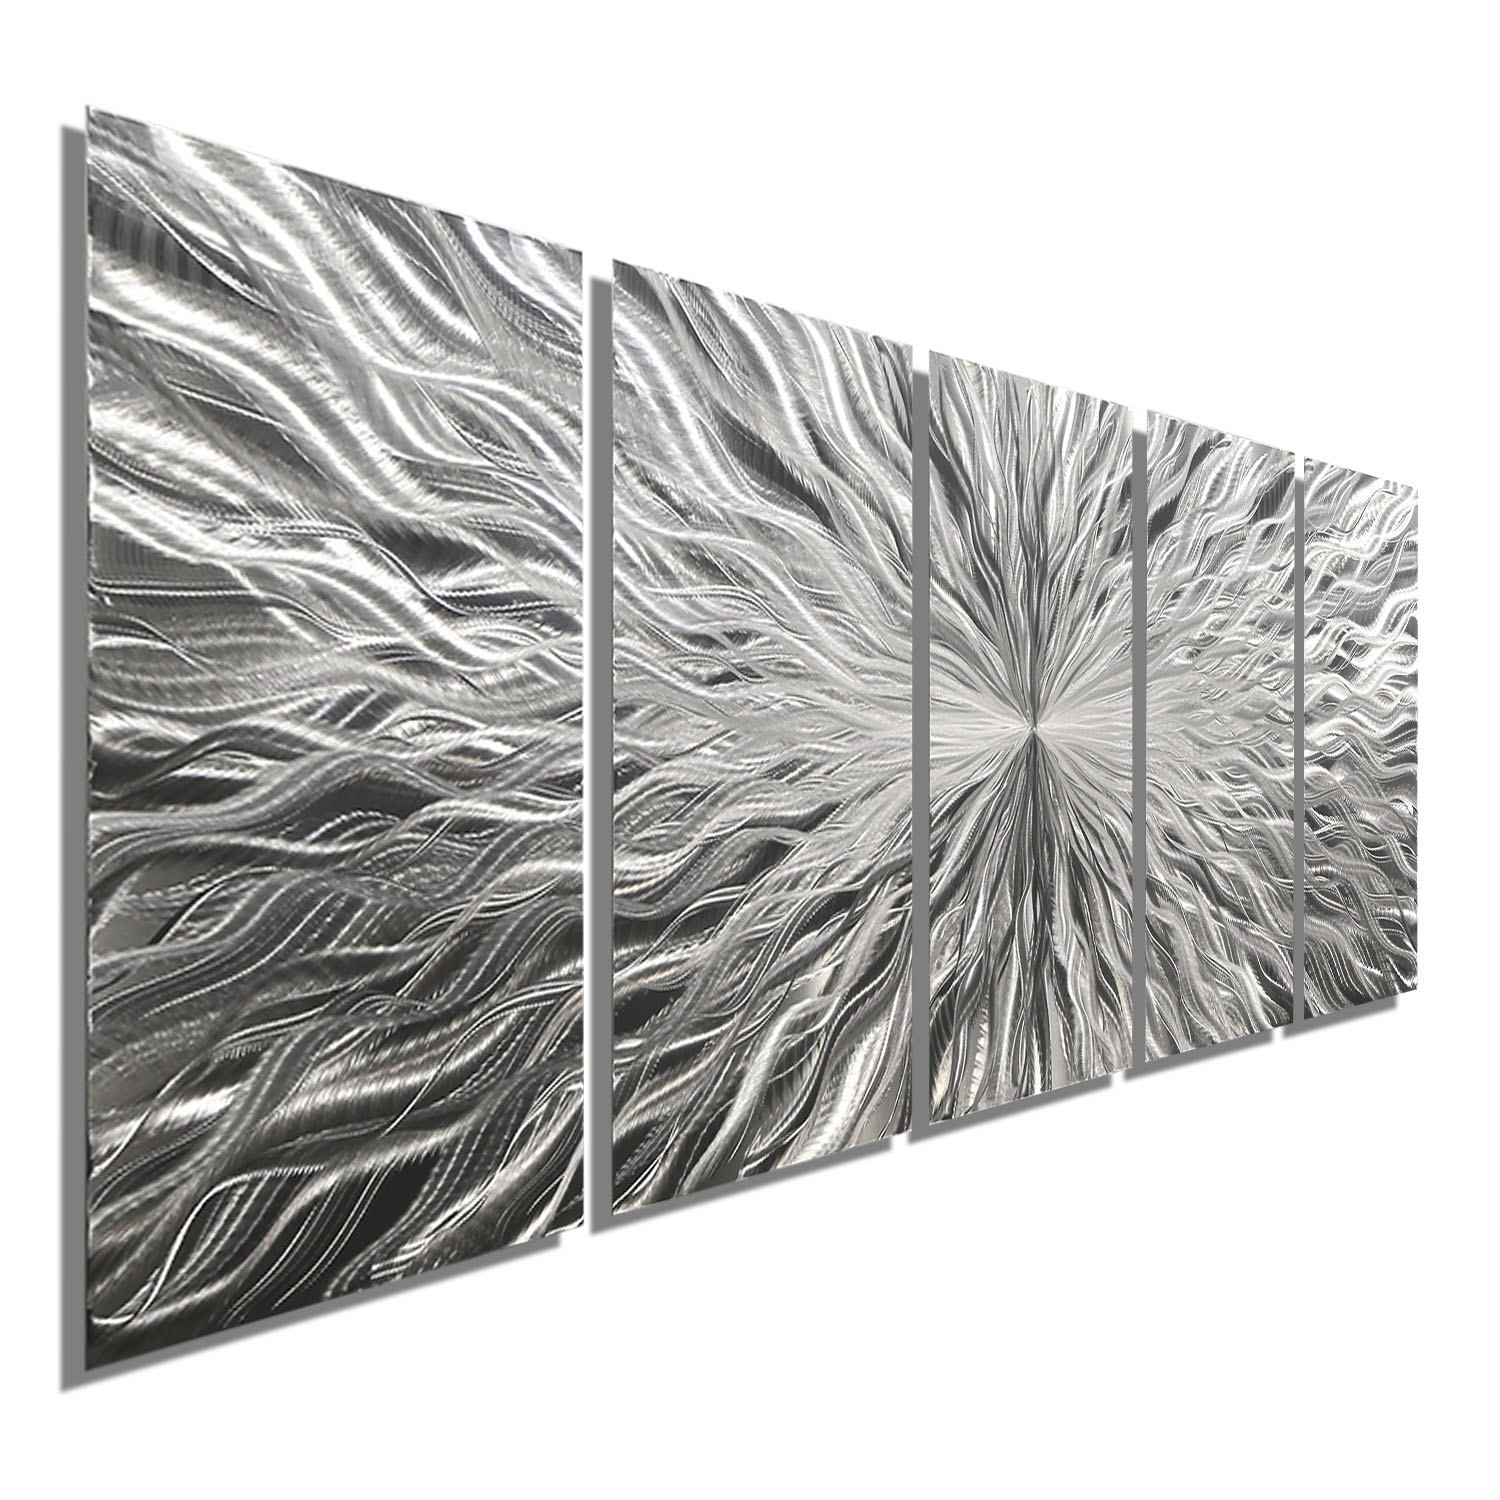 Vortex 5 – Five Panel Silver Modern Abstract Metal Wall Artjon With Most Recent Abstract Metal Wall Art Panels (View 14 of 20)